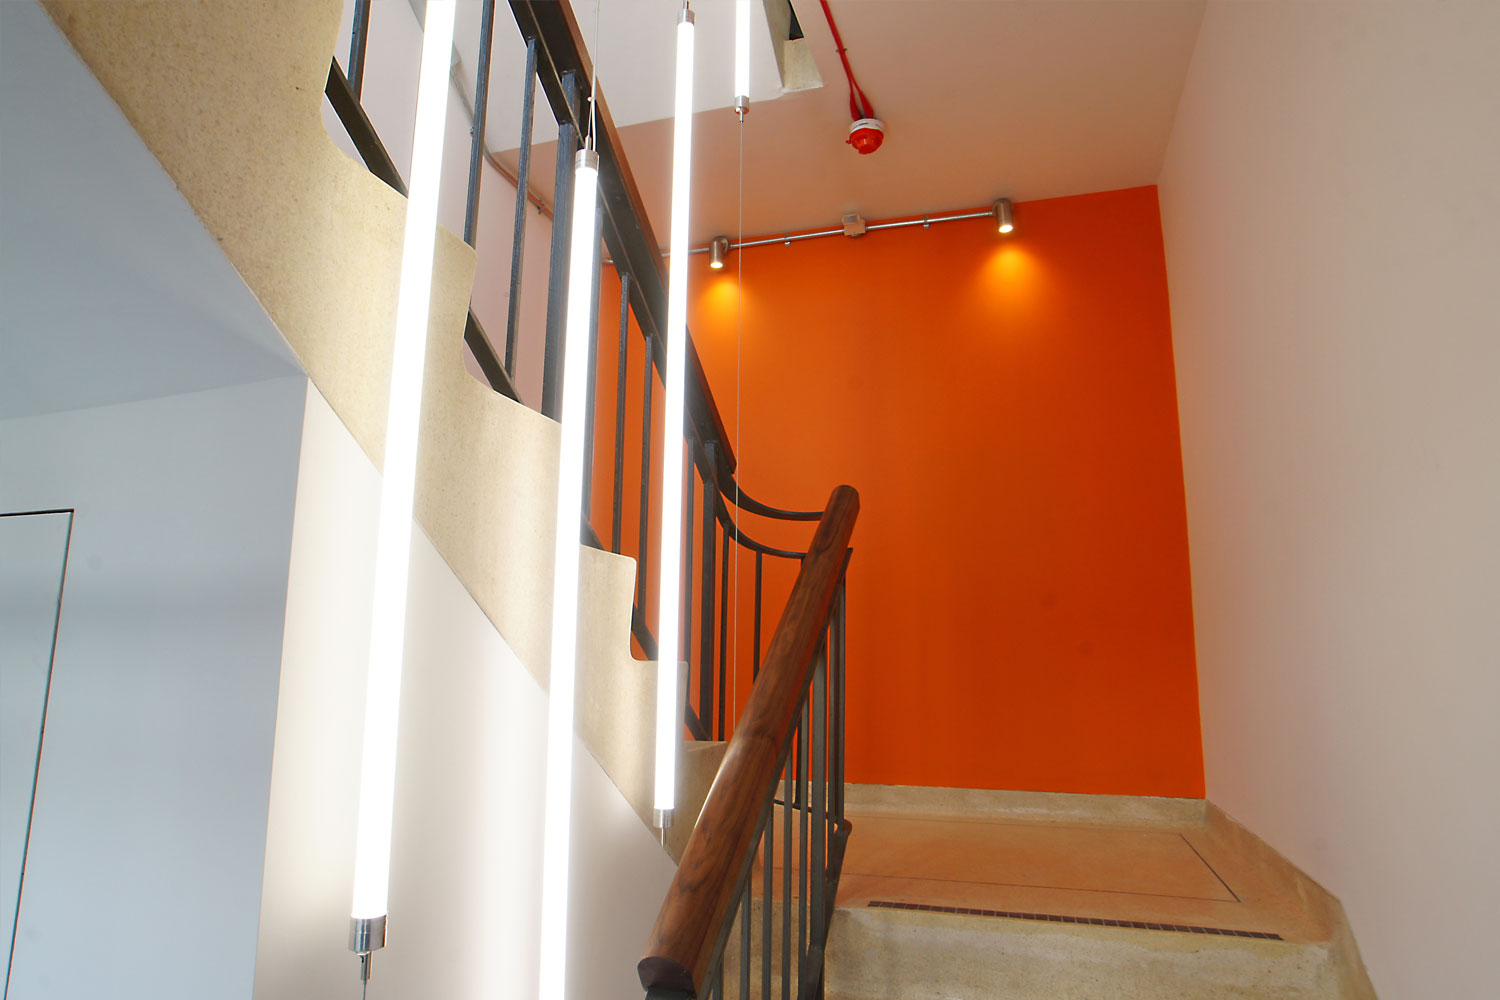 Orange wall on stairs